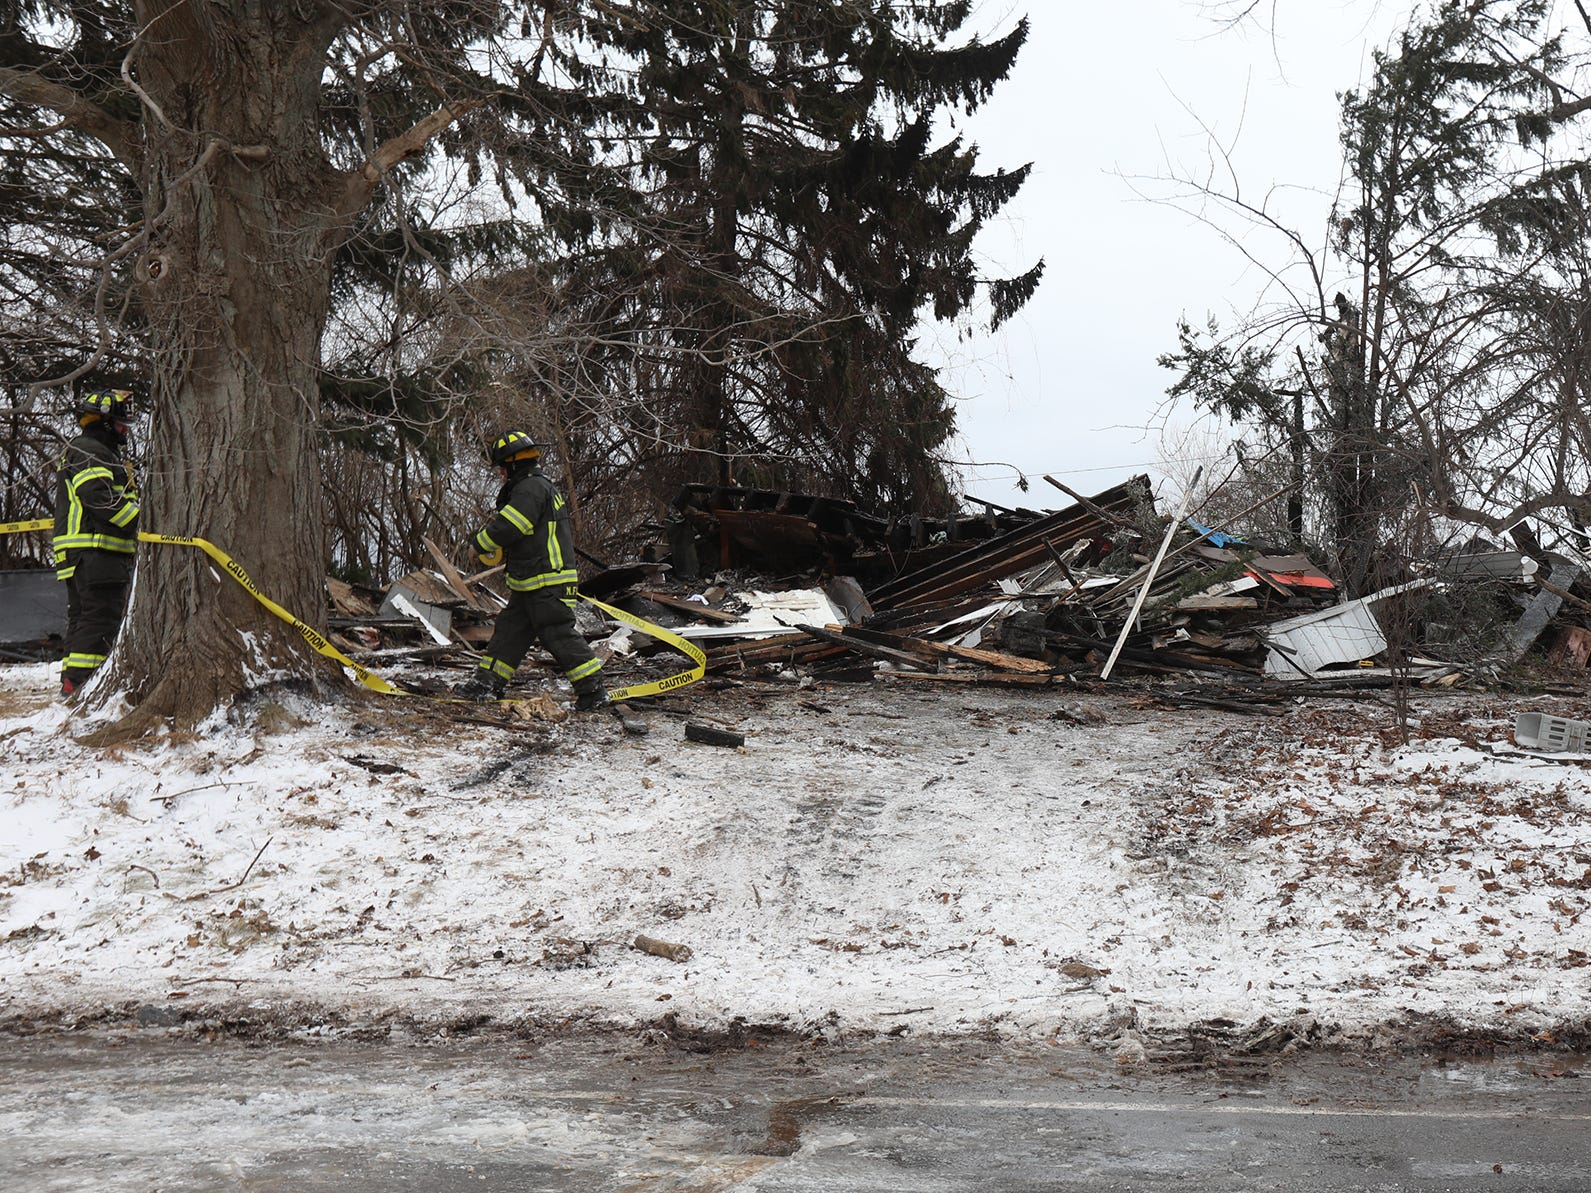 Firefighters put up a caution tape around the destroyed house.